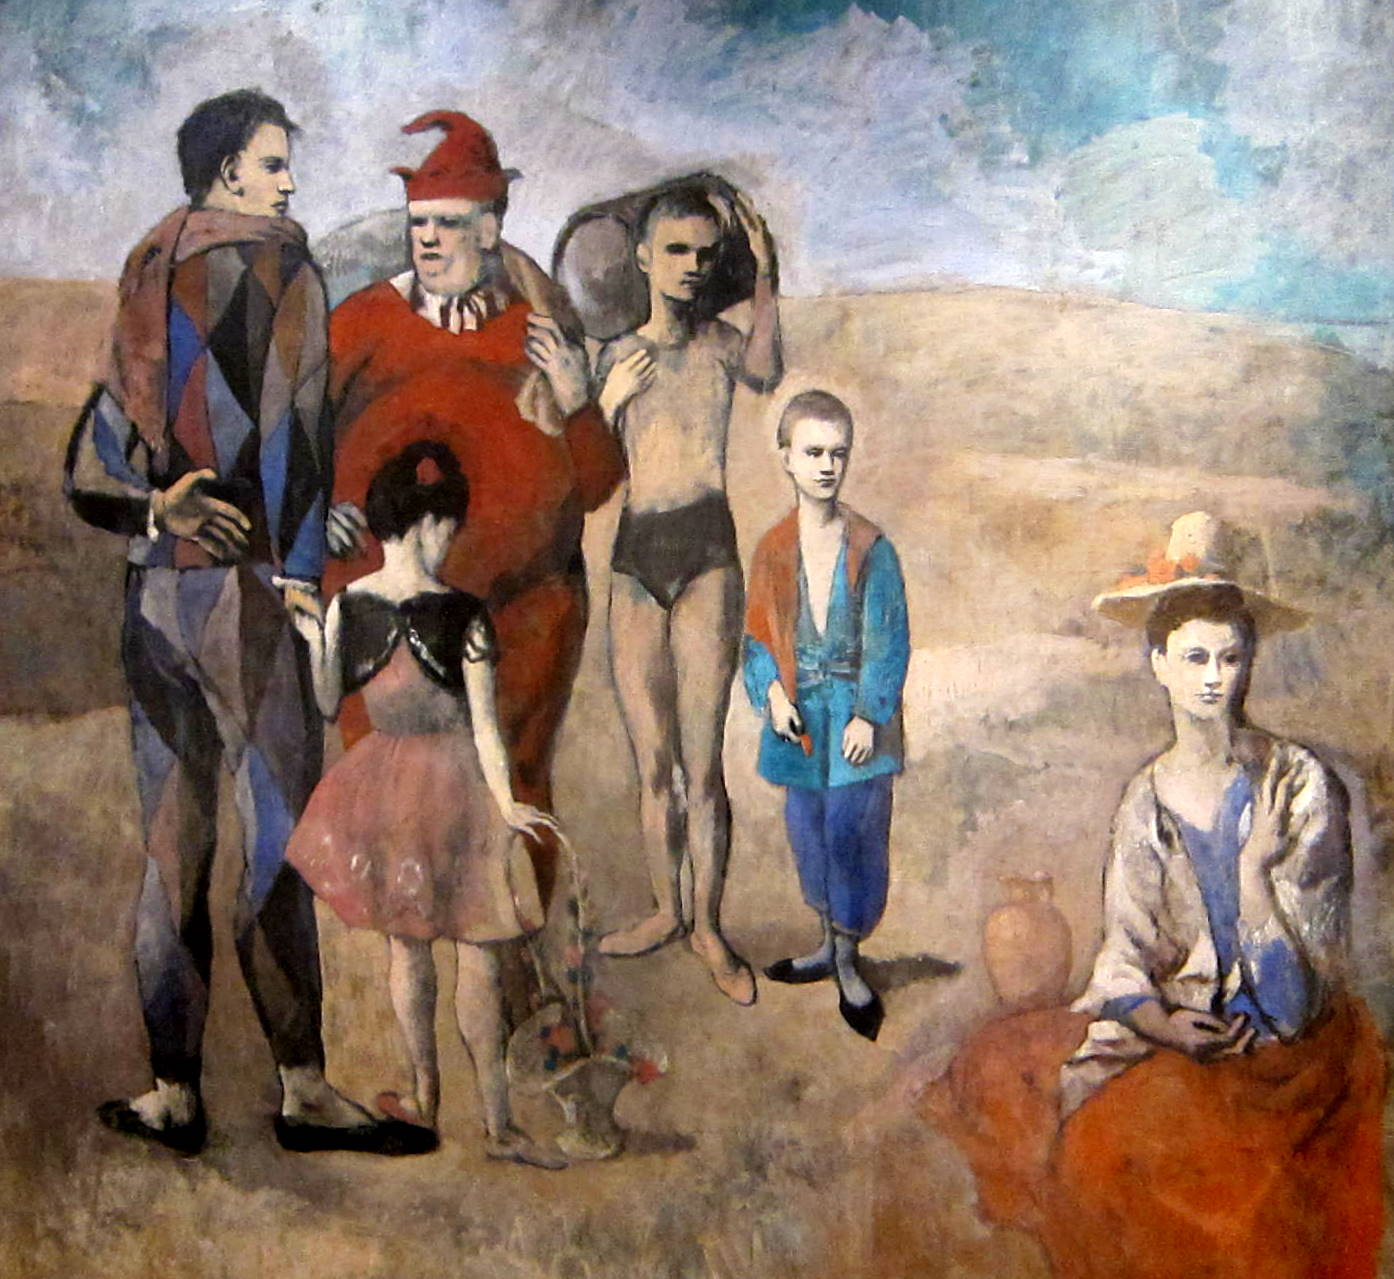 1.  Family of Saltimbanques,  Pablo Picasso, Oil on Canvas, 1905